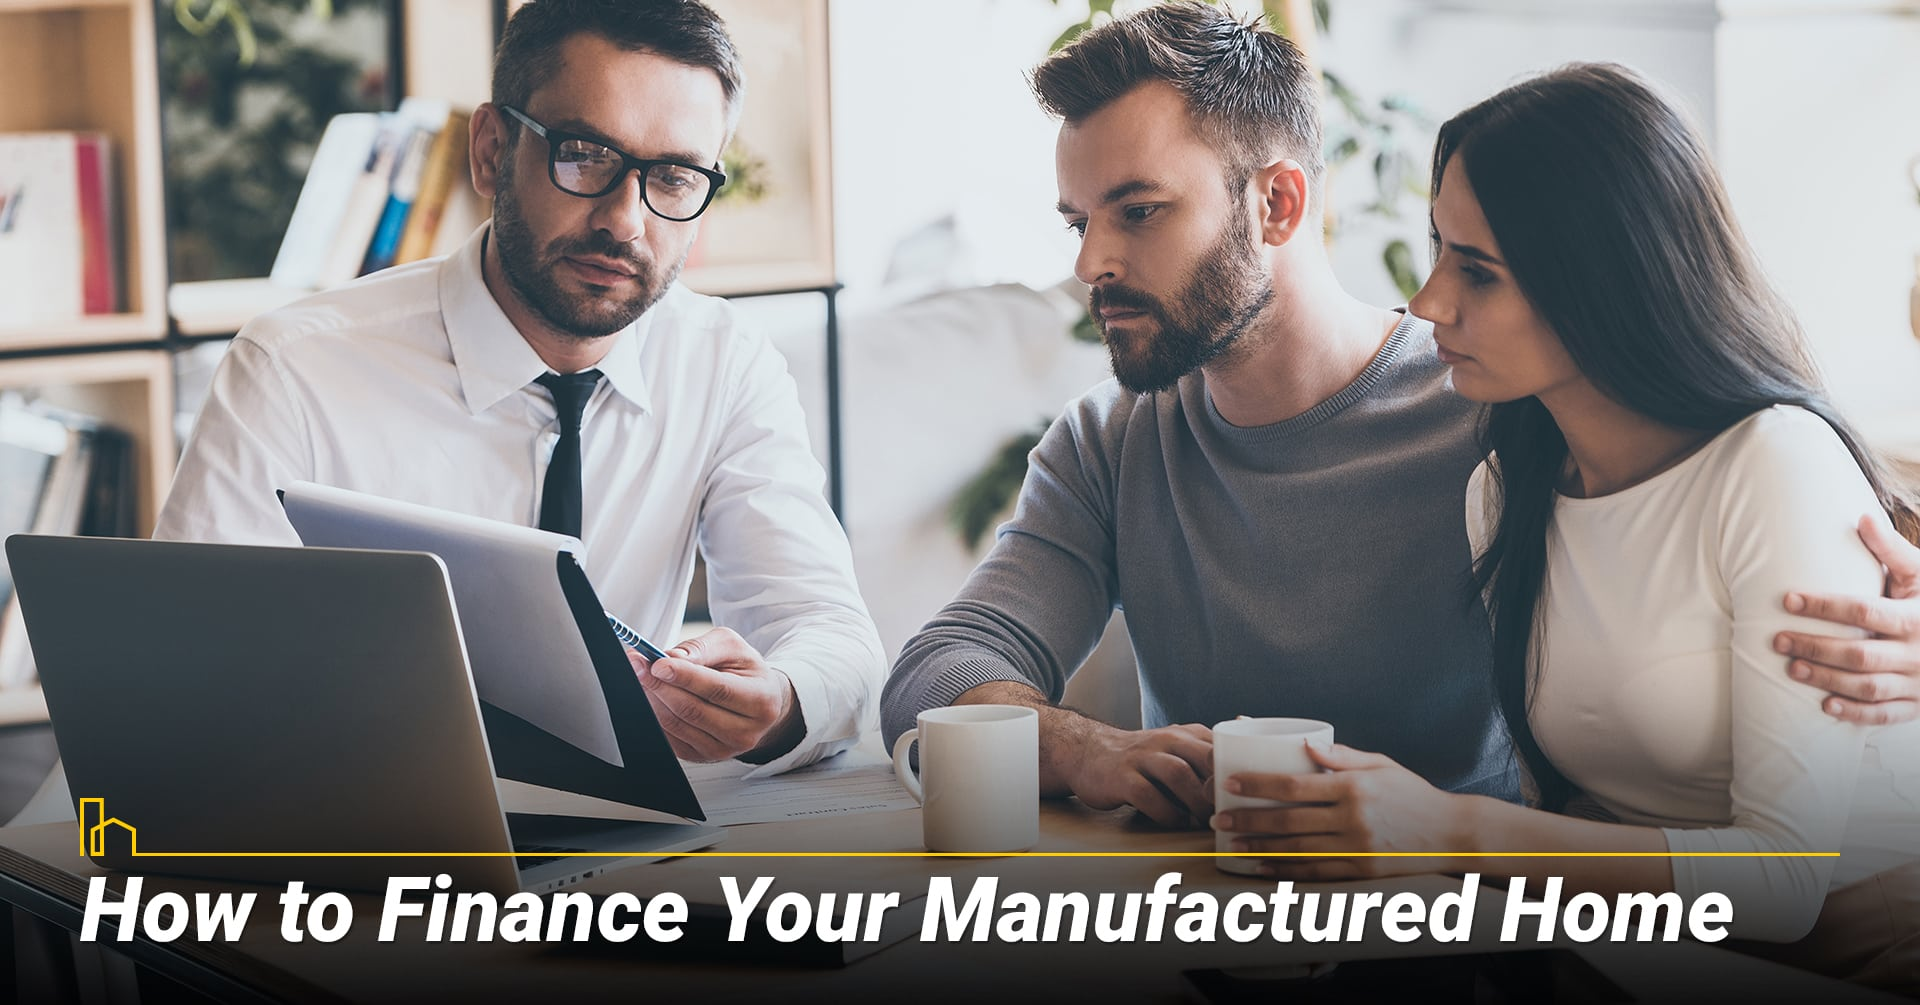 How to Finance Your Manufactured Home, finance your manufactured home